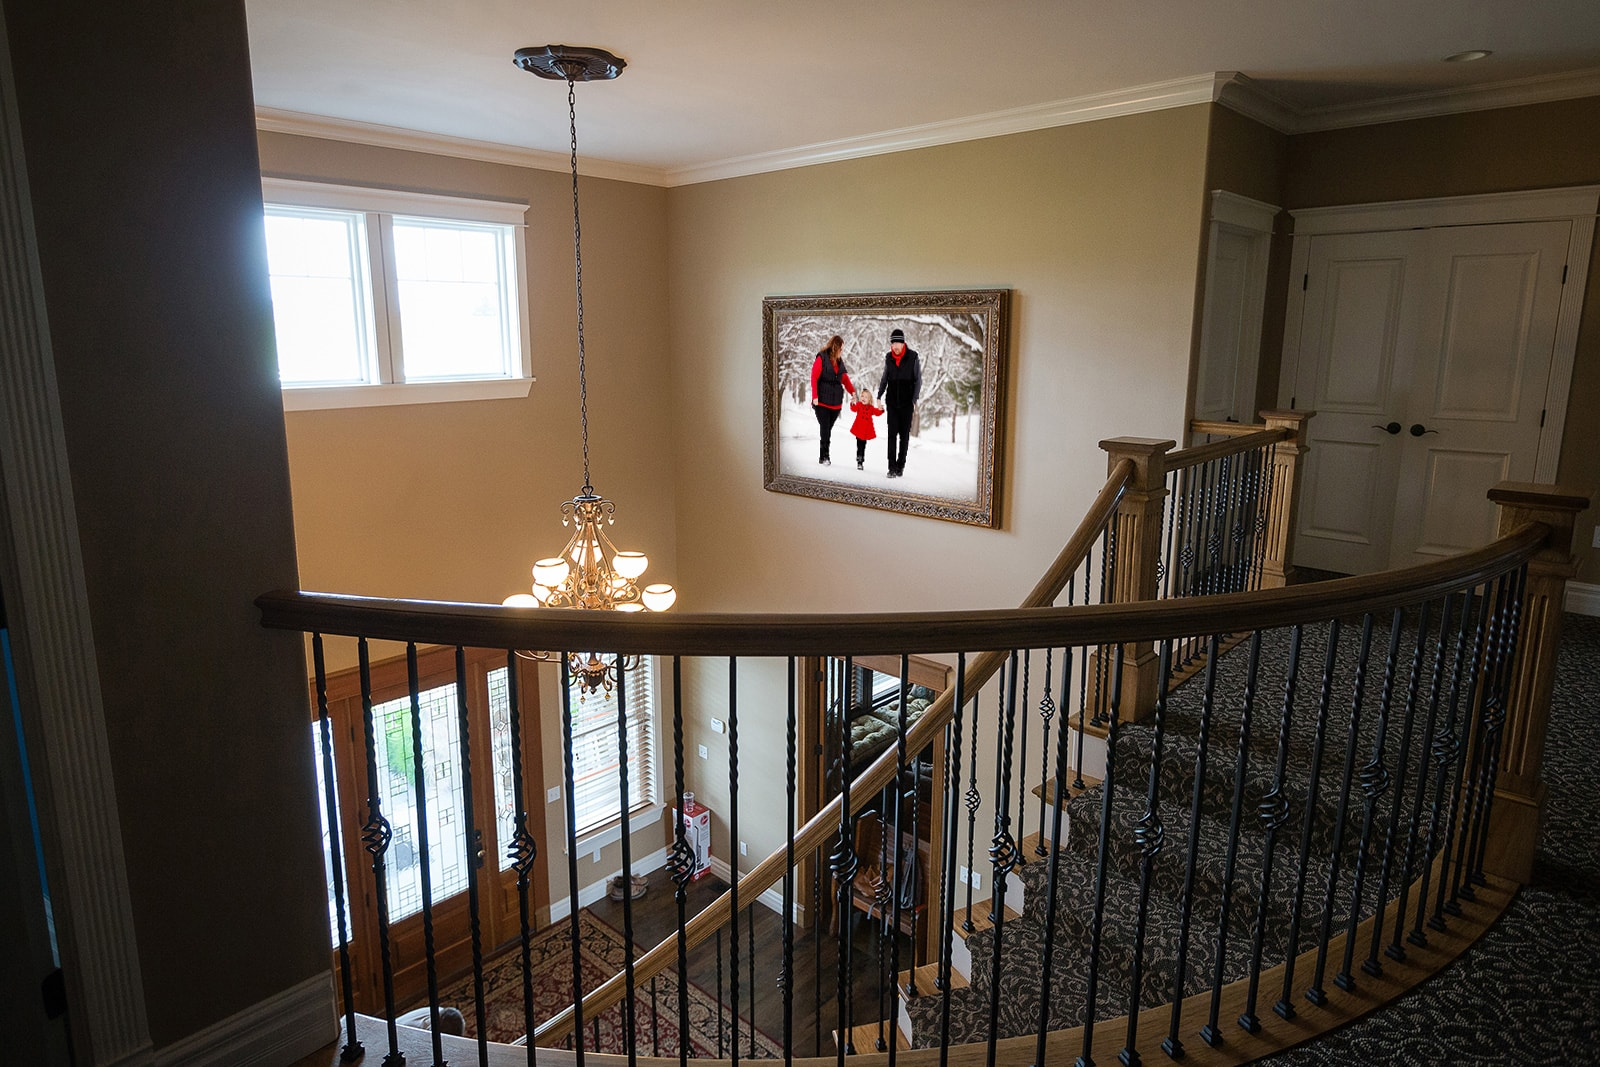 a family portrait hangs in a stairway of the home for all to admire. The family is walking in the snow with snow-covered trees.